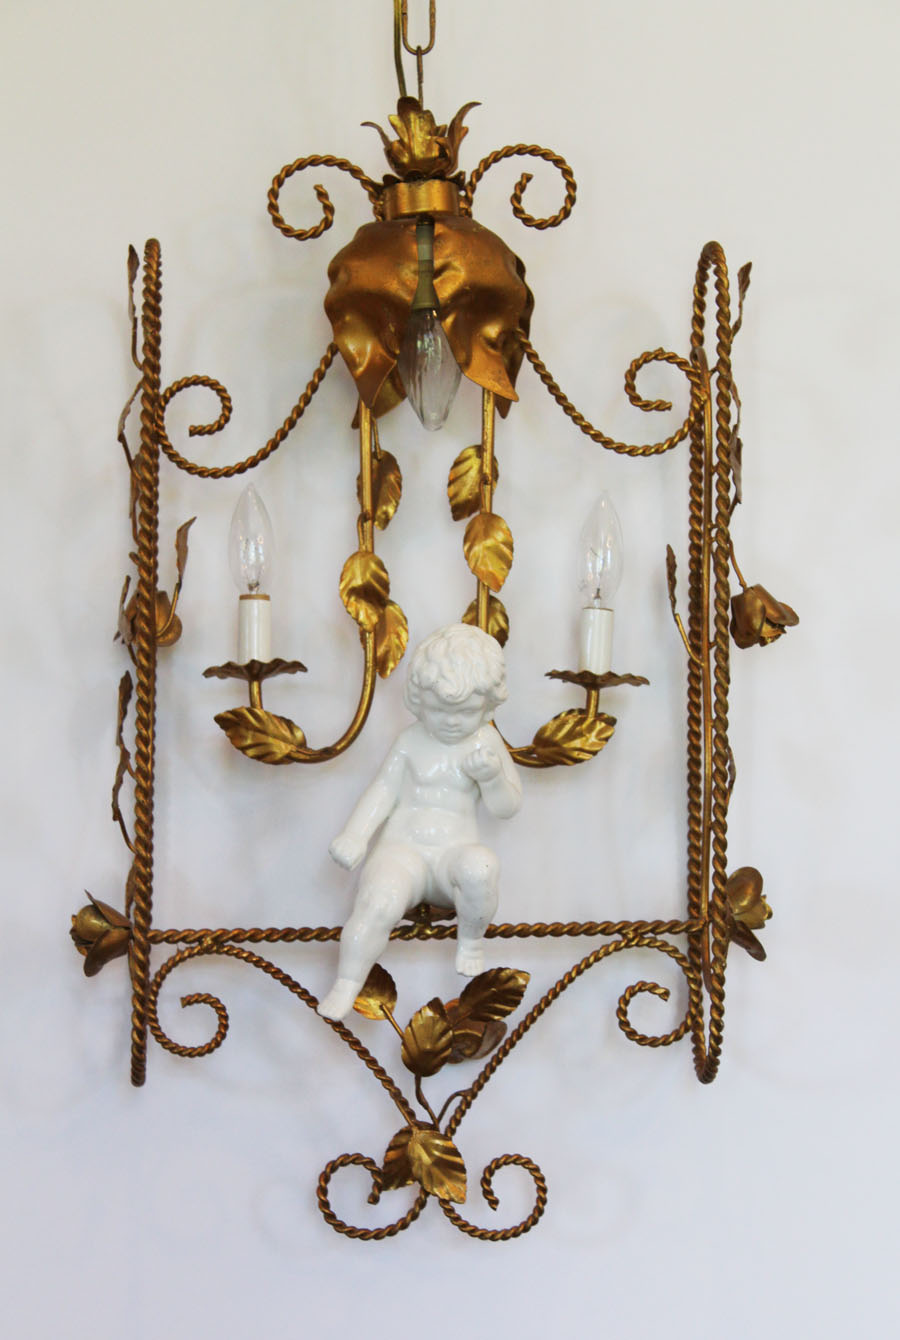 Italian Tole Porcelain Cherub in Swing Chandelier